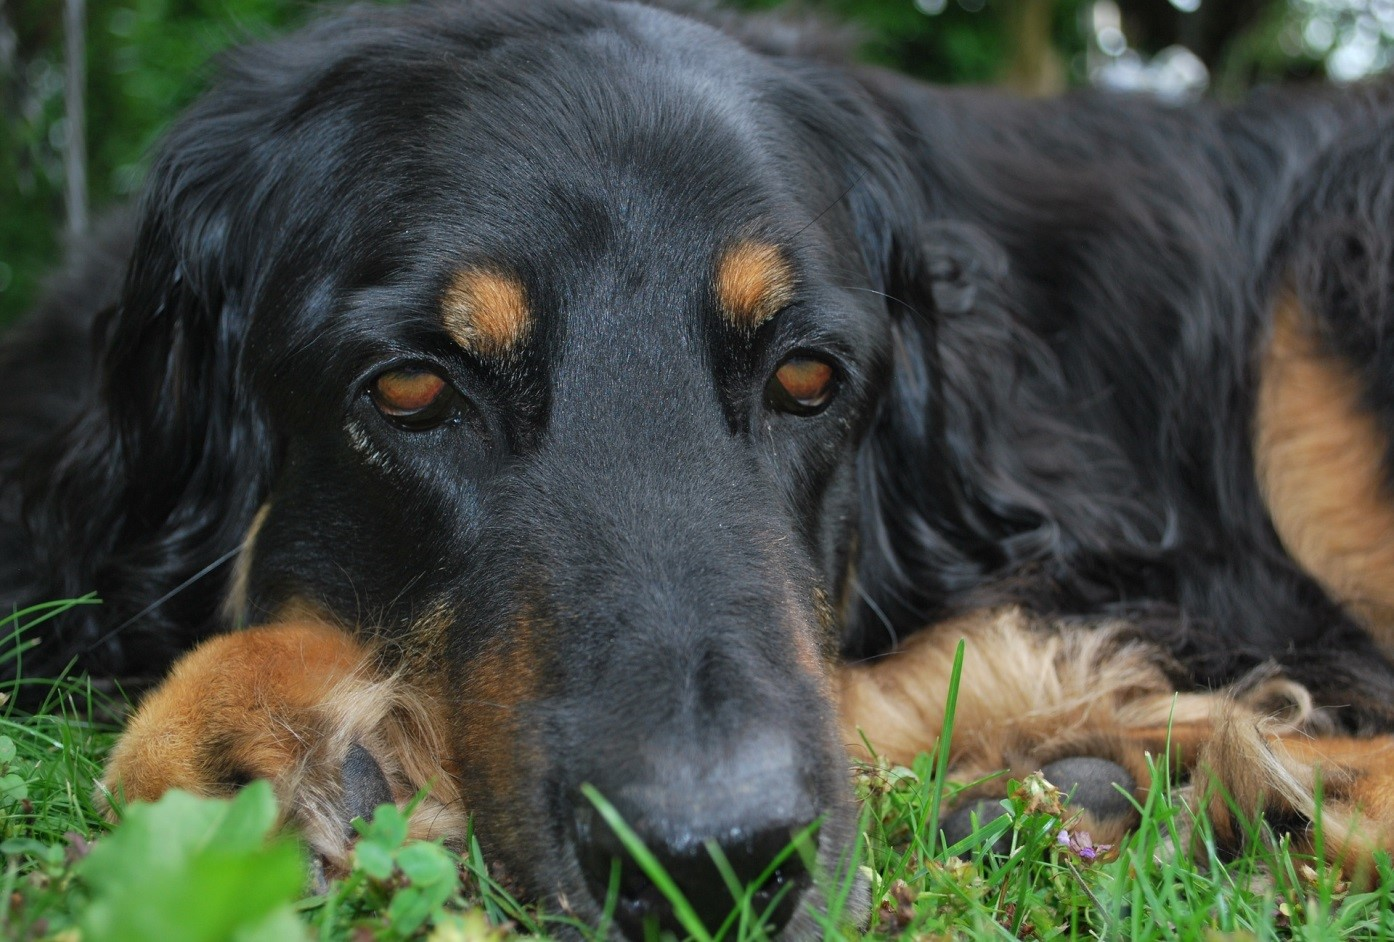 How to protect your dog from Lyme disease?